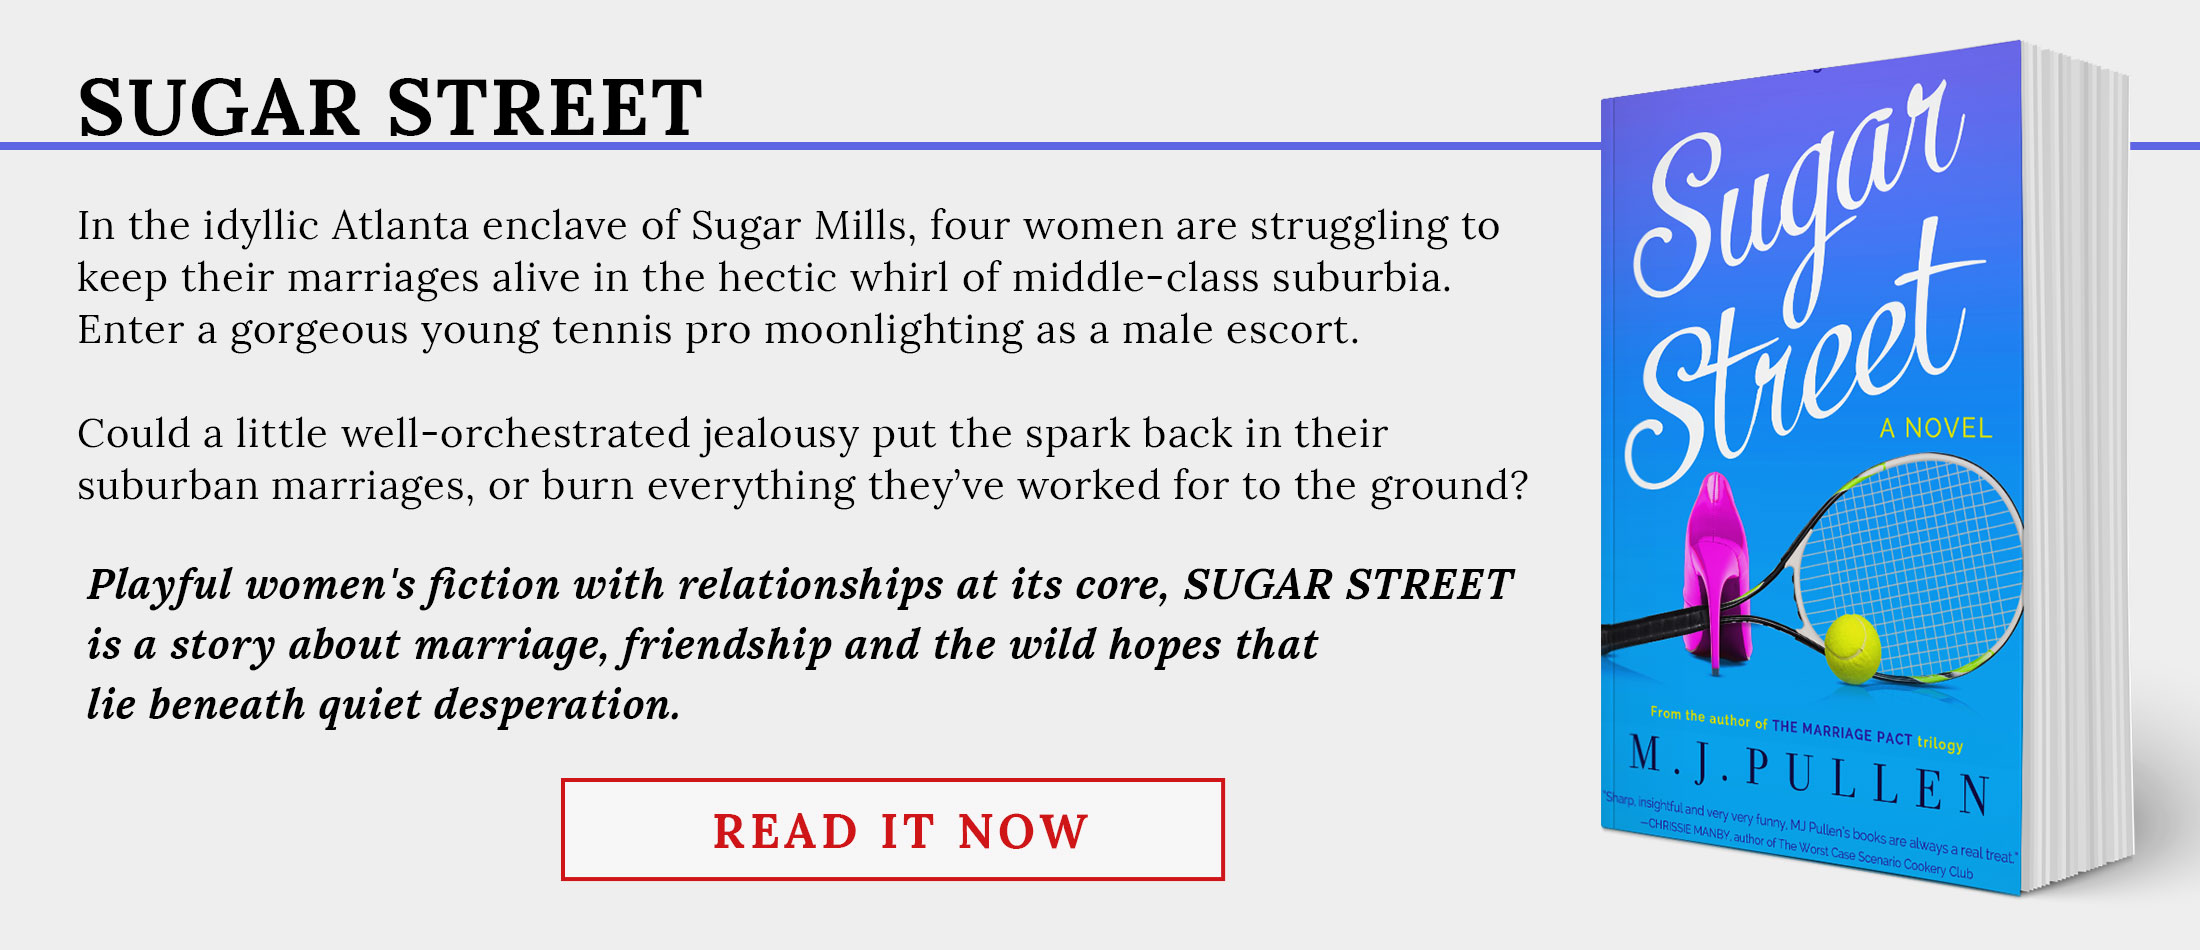 Sugar Street by M.J. Pullen - Playful Women's Fiction with Serious Heart